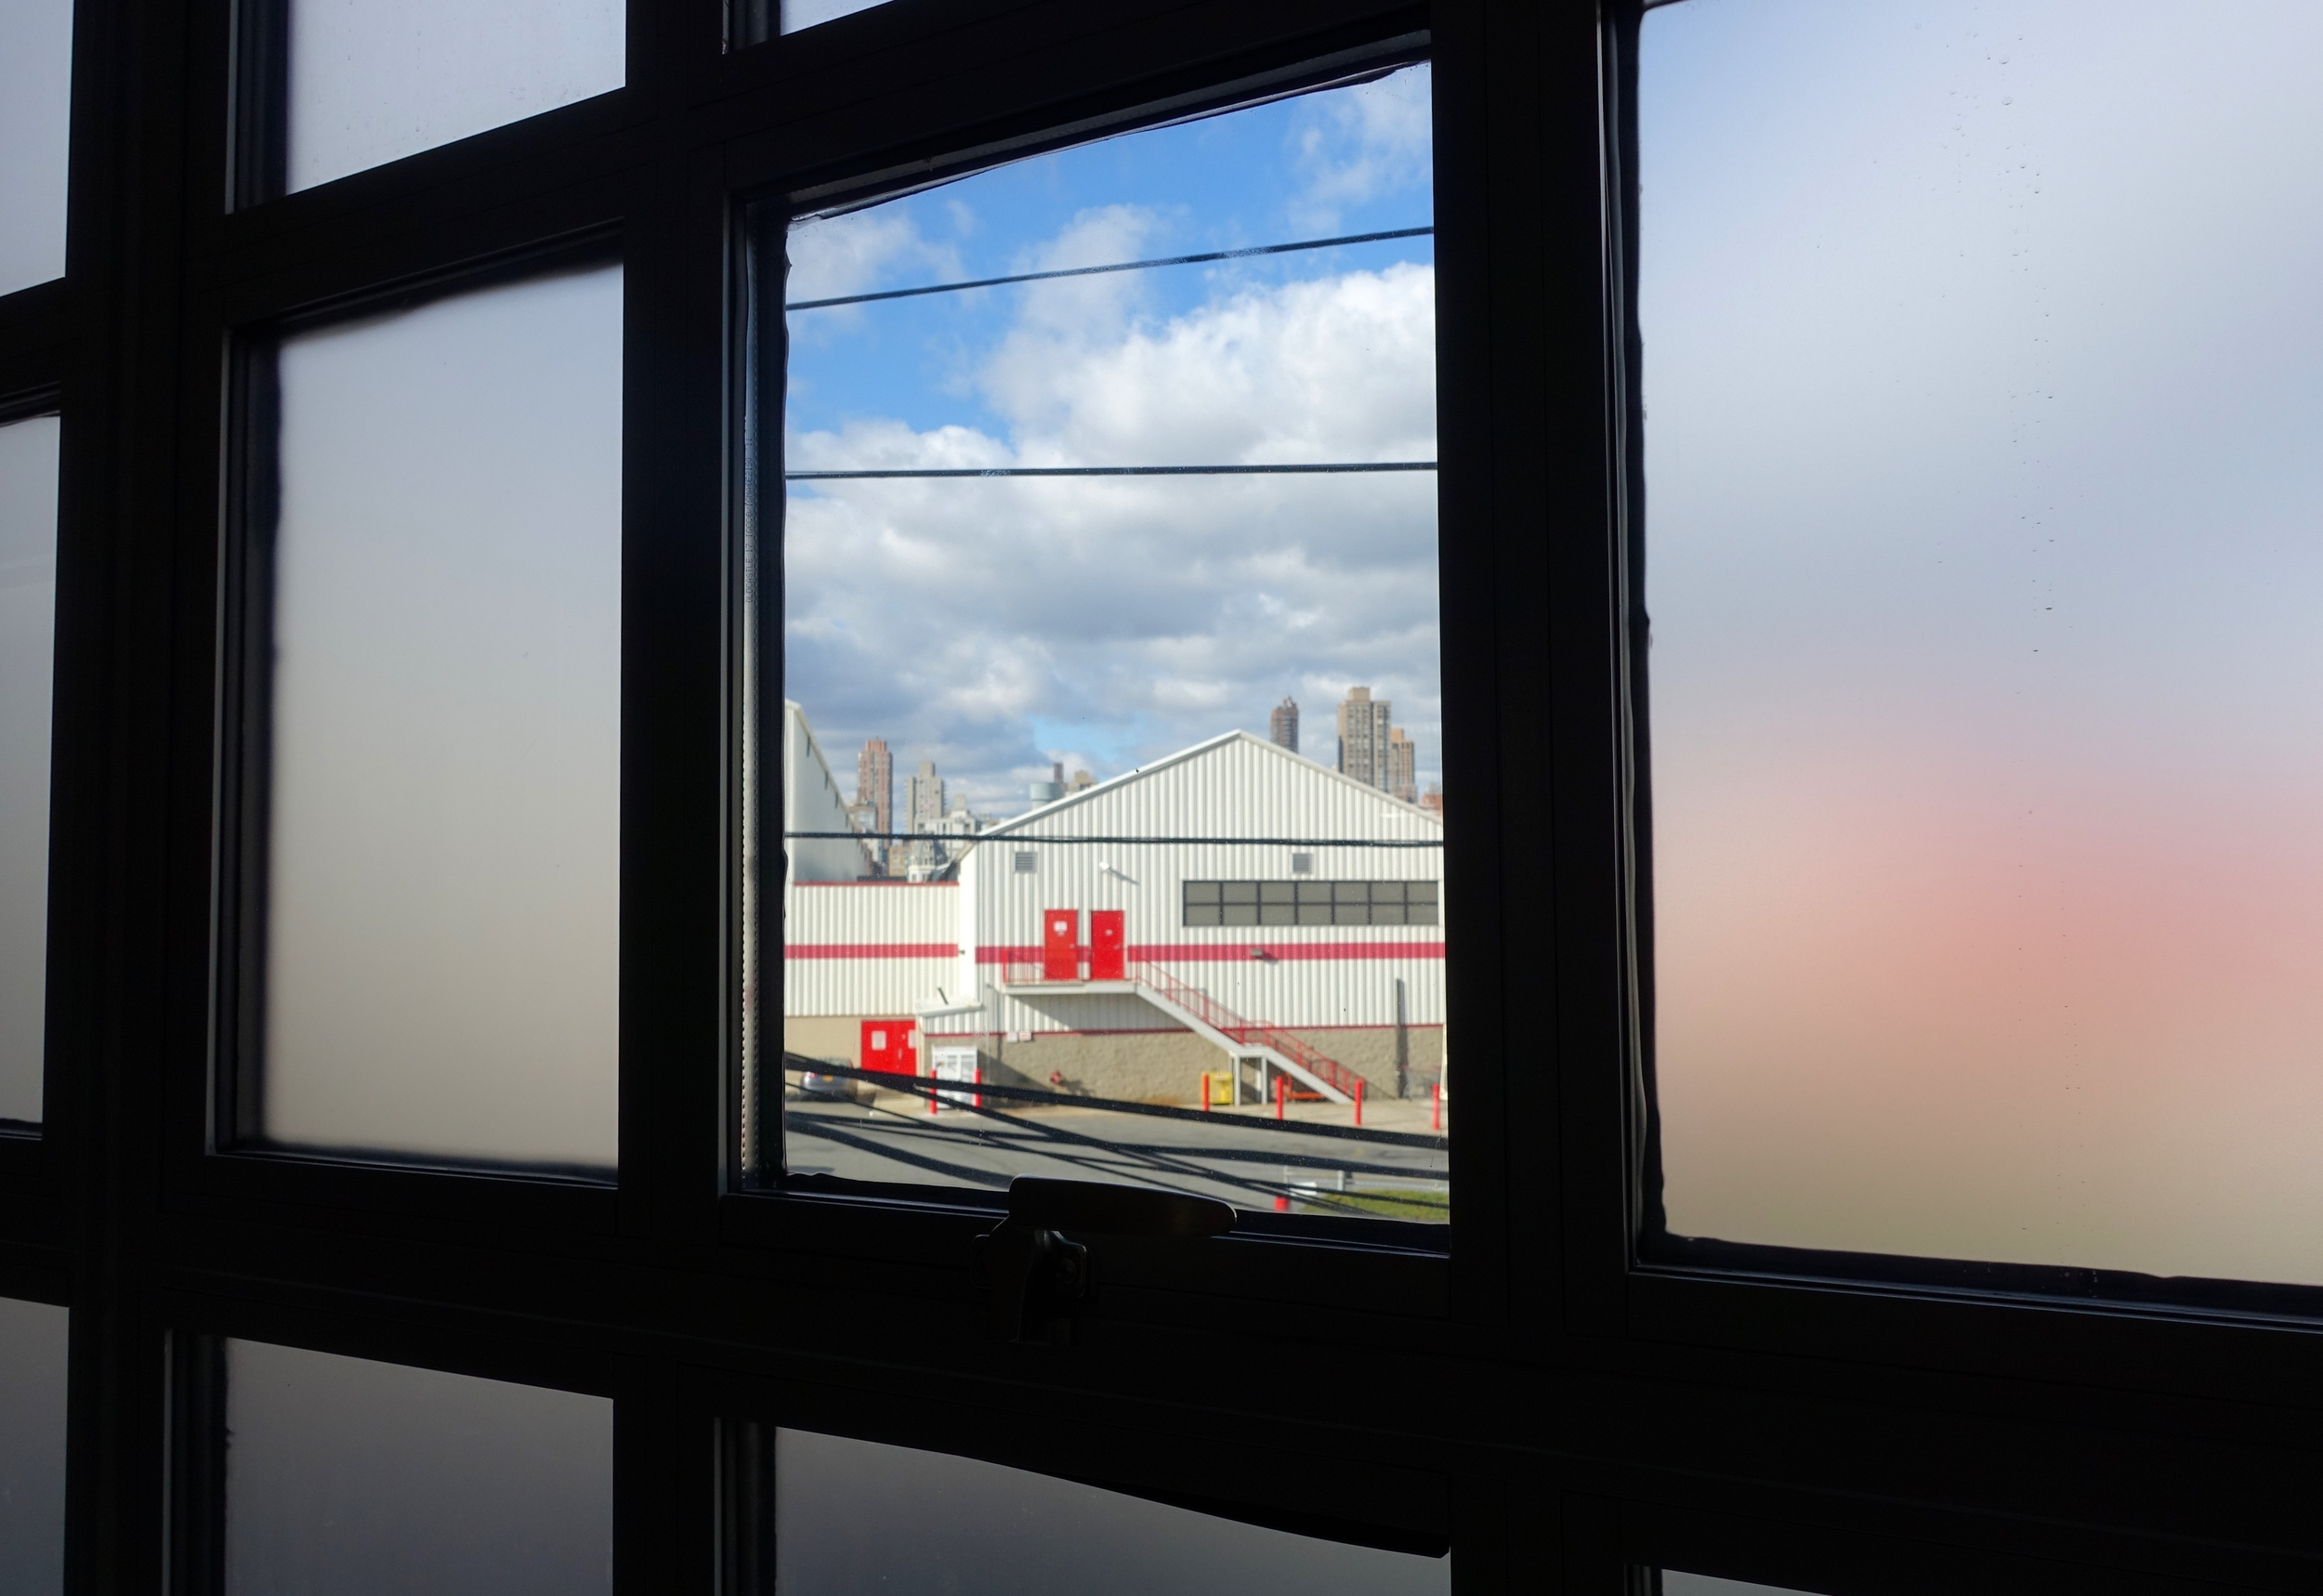 Daytripper365--Looking out at the Noguchi Museum.JPG